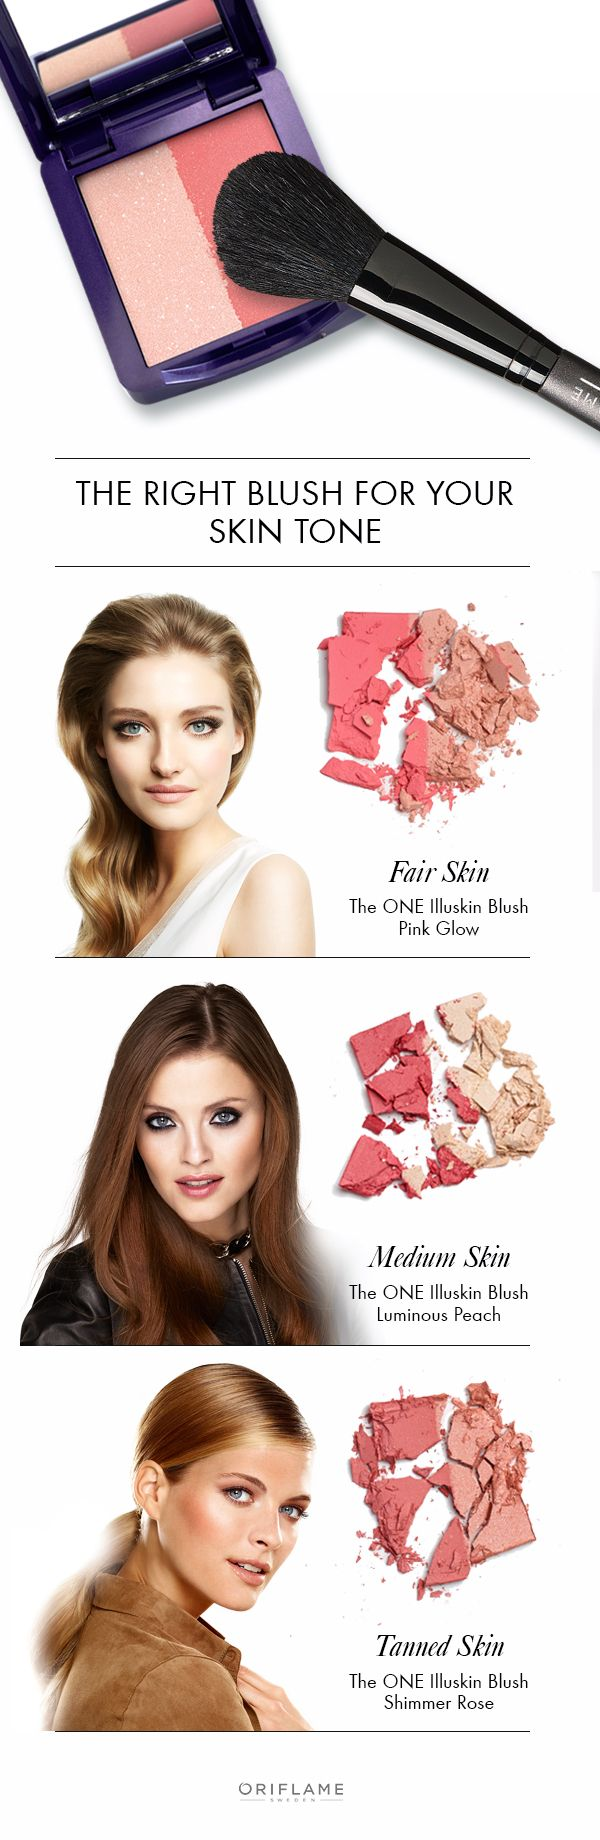 Choosing the right blush for your skin tone can be challenging but we make it easy to choose the right one! Using a two-toned blush means you can use the darker shade to sculpt and the lighter shimmering shade to highlight. Happy blushing!